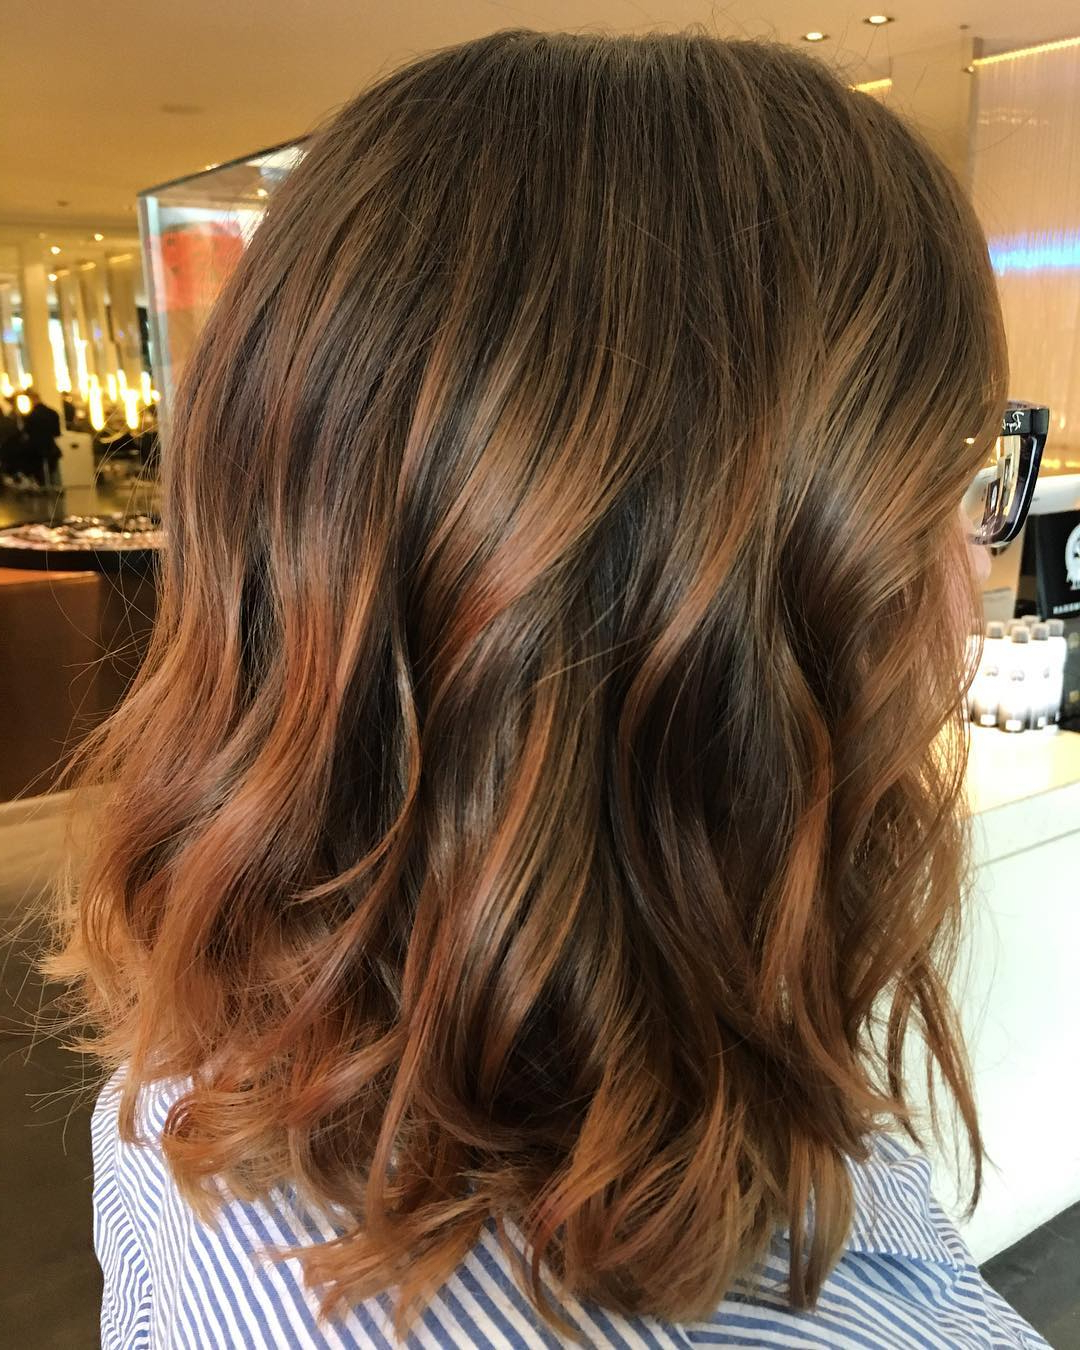 25 Exciting Medium Length Layered Haircuts – Popular Haircuts Within Chic Chocolate Layers Hairstyles (View 5 of 20)